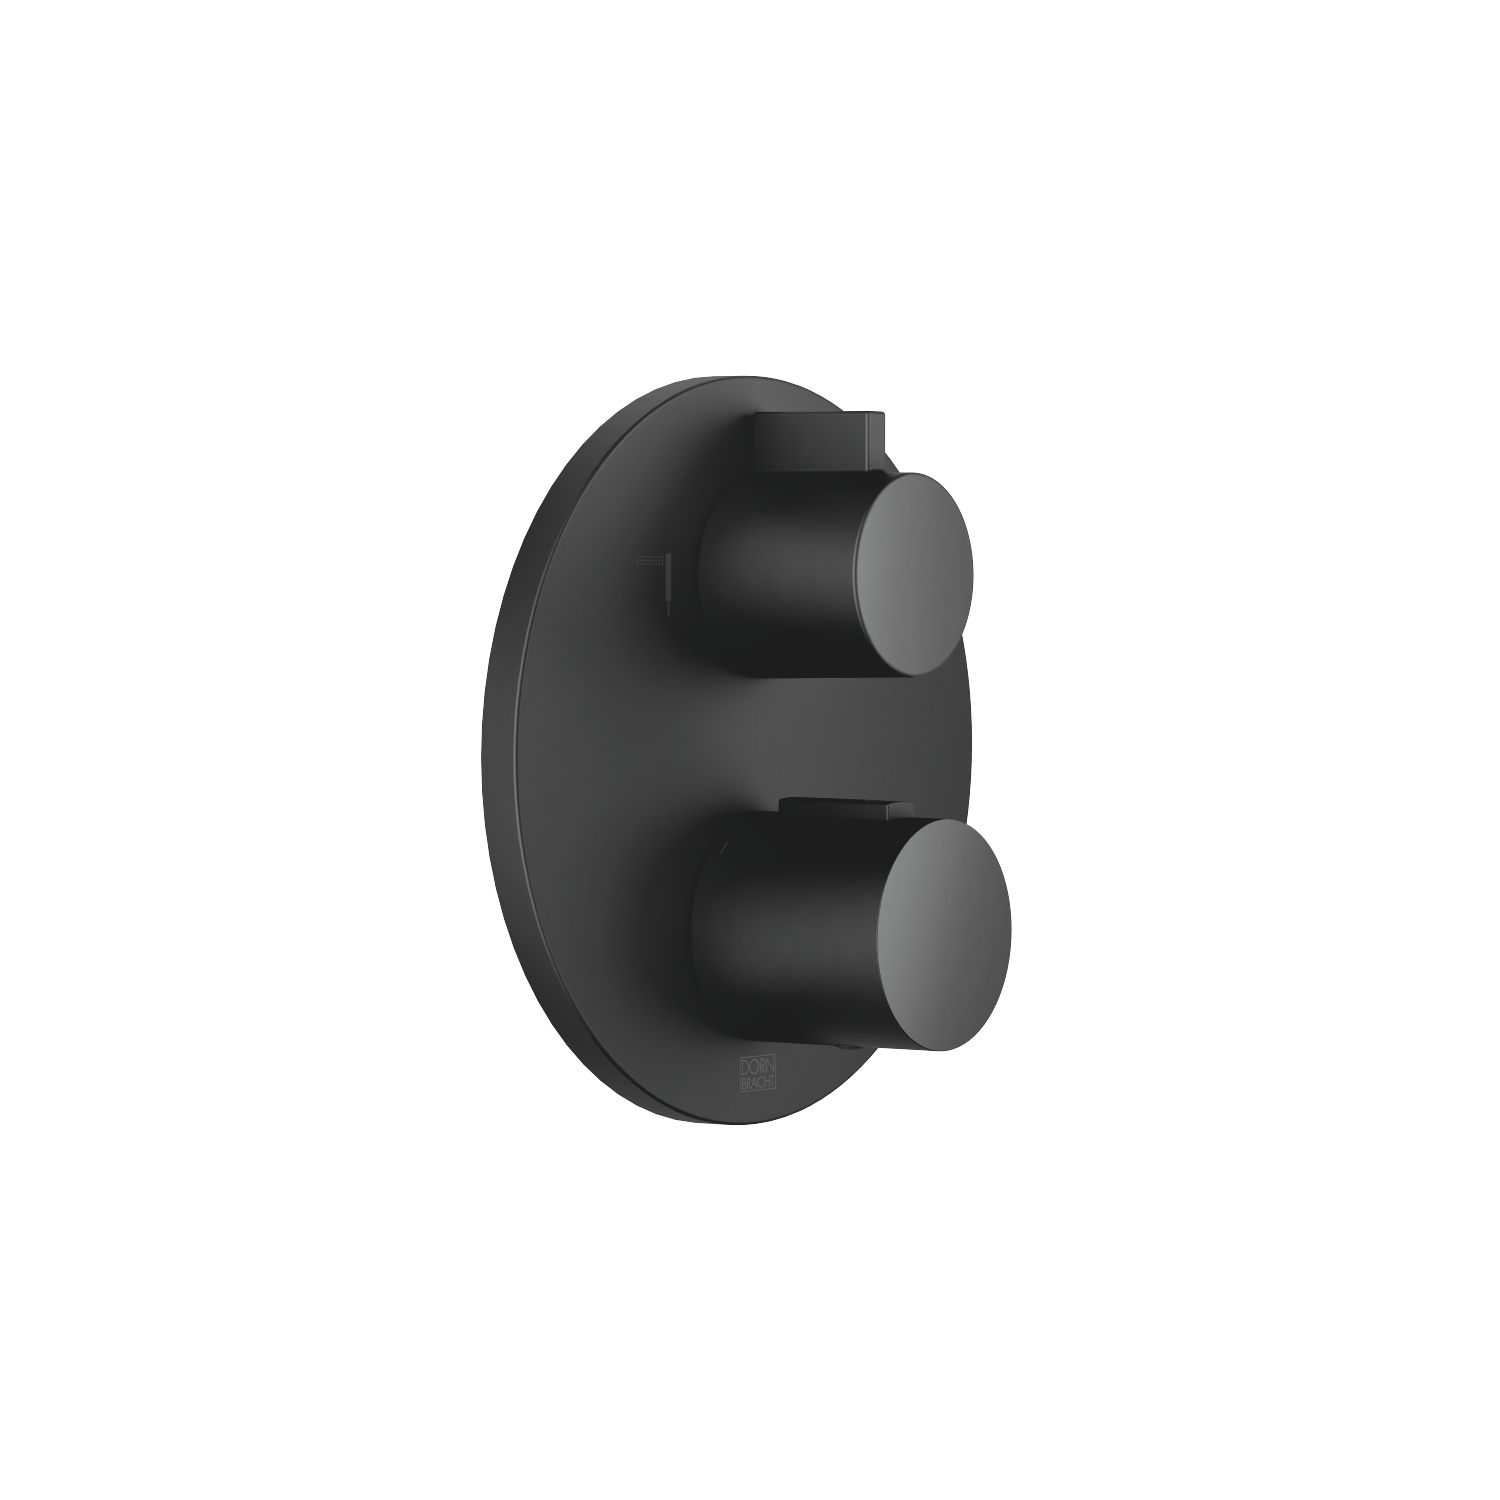 Concealed thermostat with two-way volume control - black matte